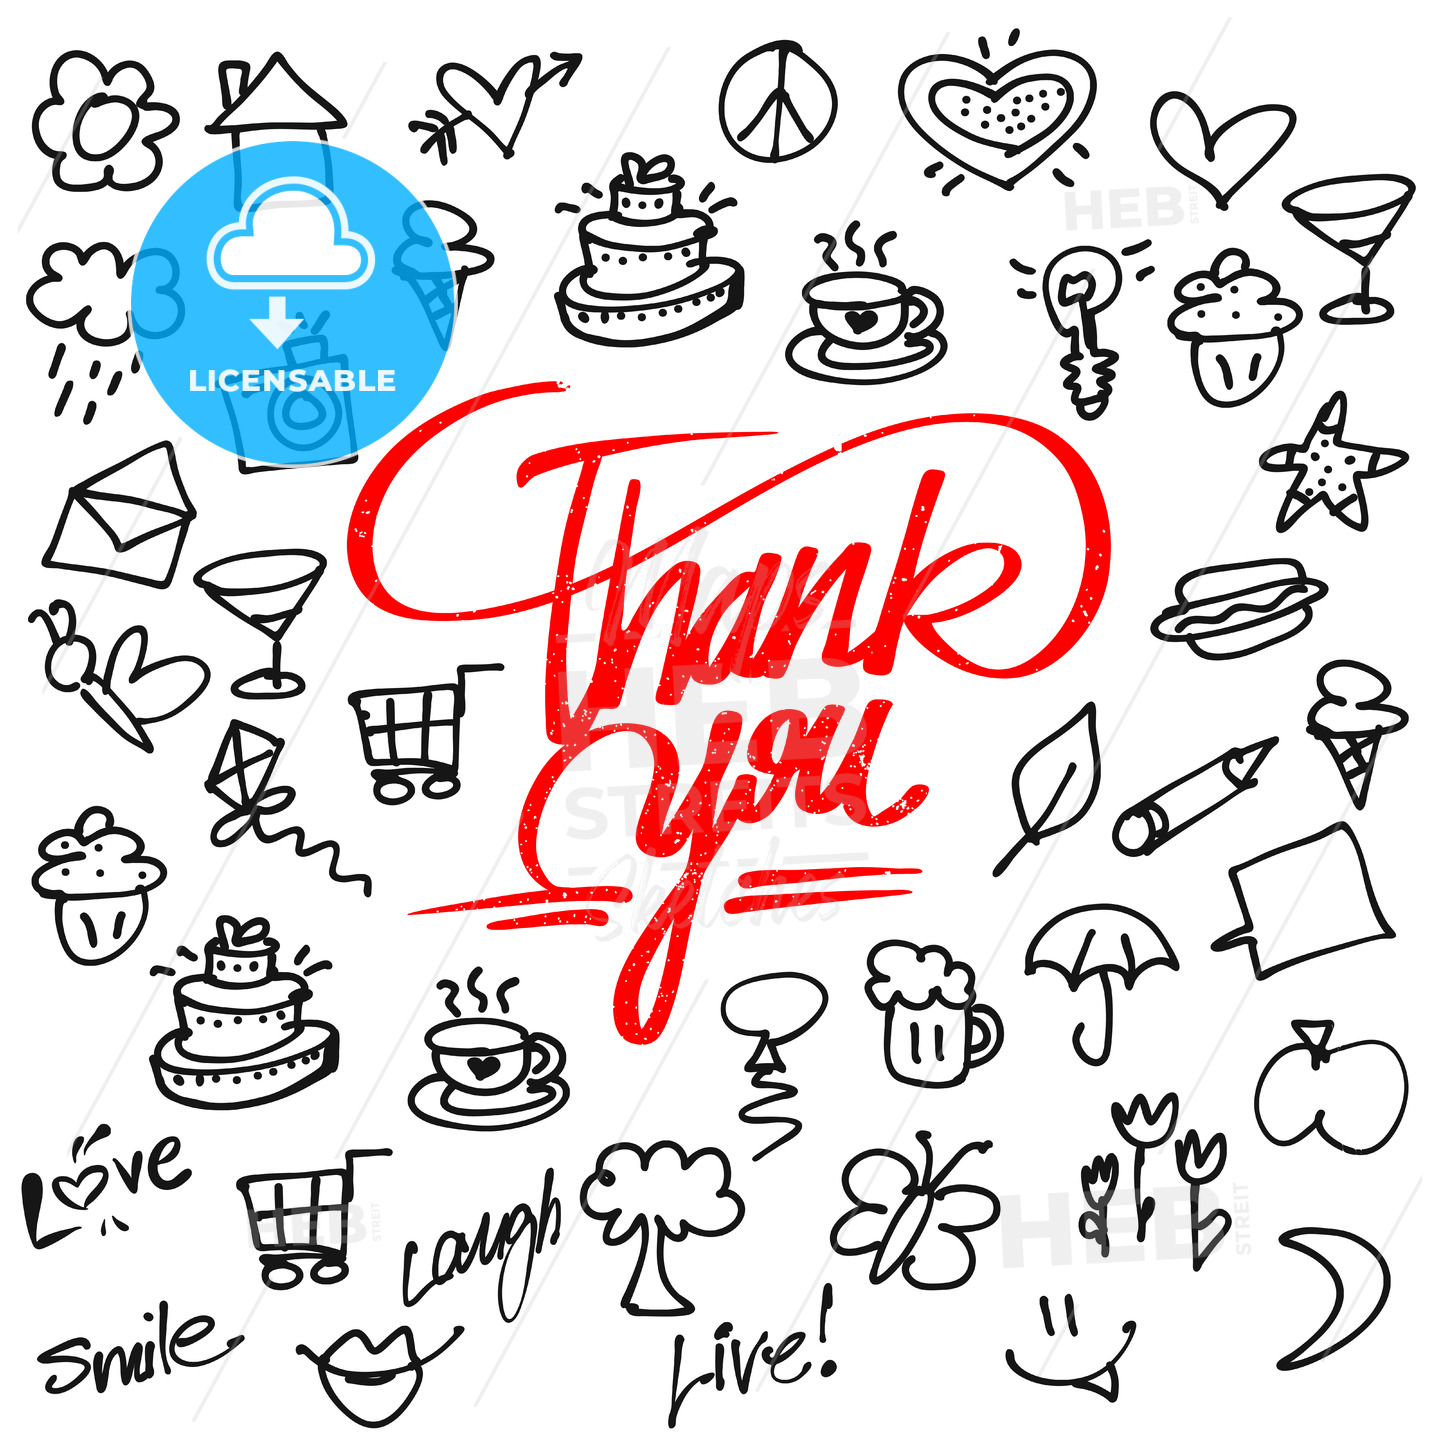 Thank you letter Typo and Icons - Hebstreits